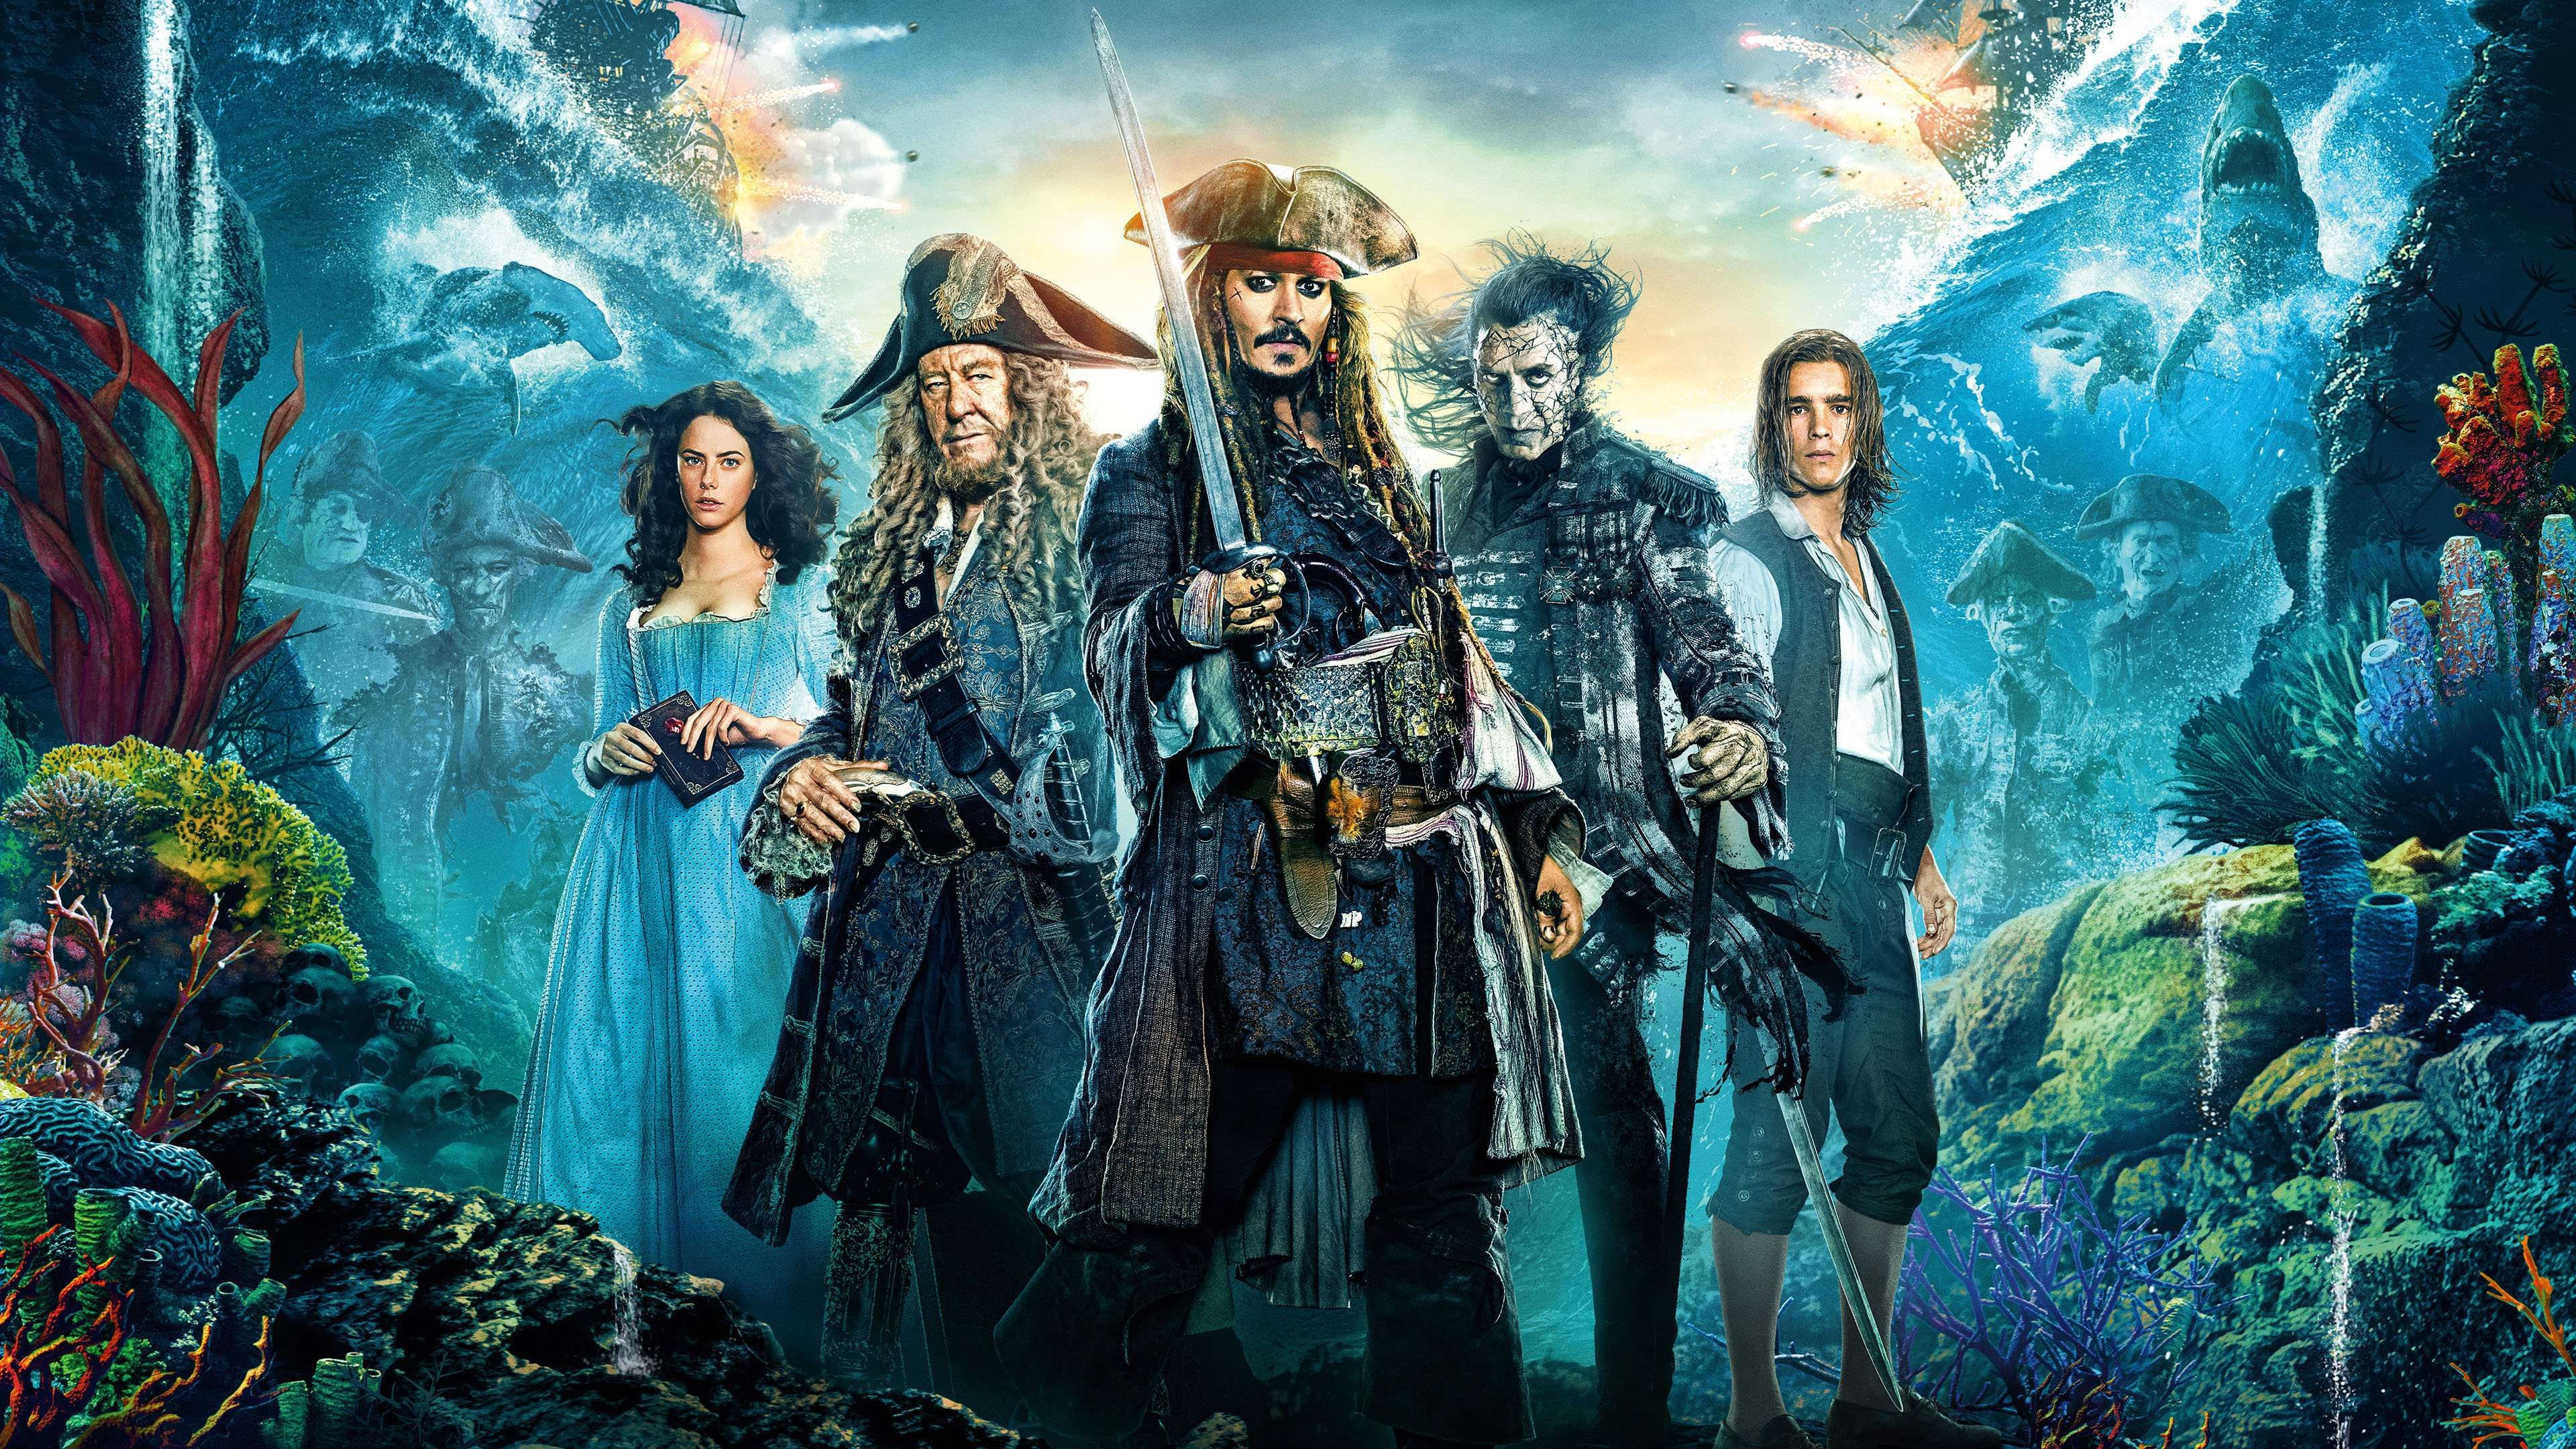 Pirates Of The Caribbean Dead Men Tell No Tales Will Turner Pirates Of The Caribbean Dead Men Tell No Tales I Love Movies Pirates Of The Caribbean Jack Sparrow Pirates